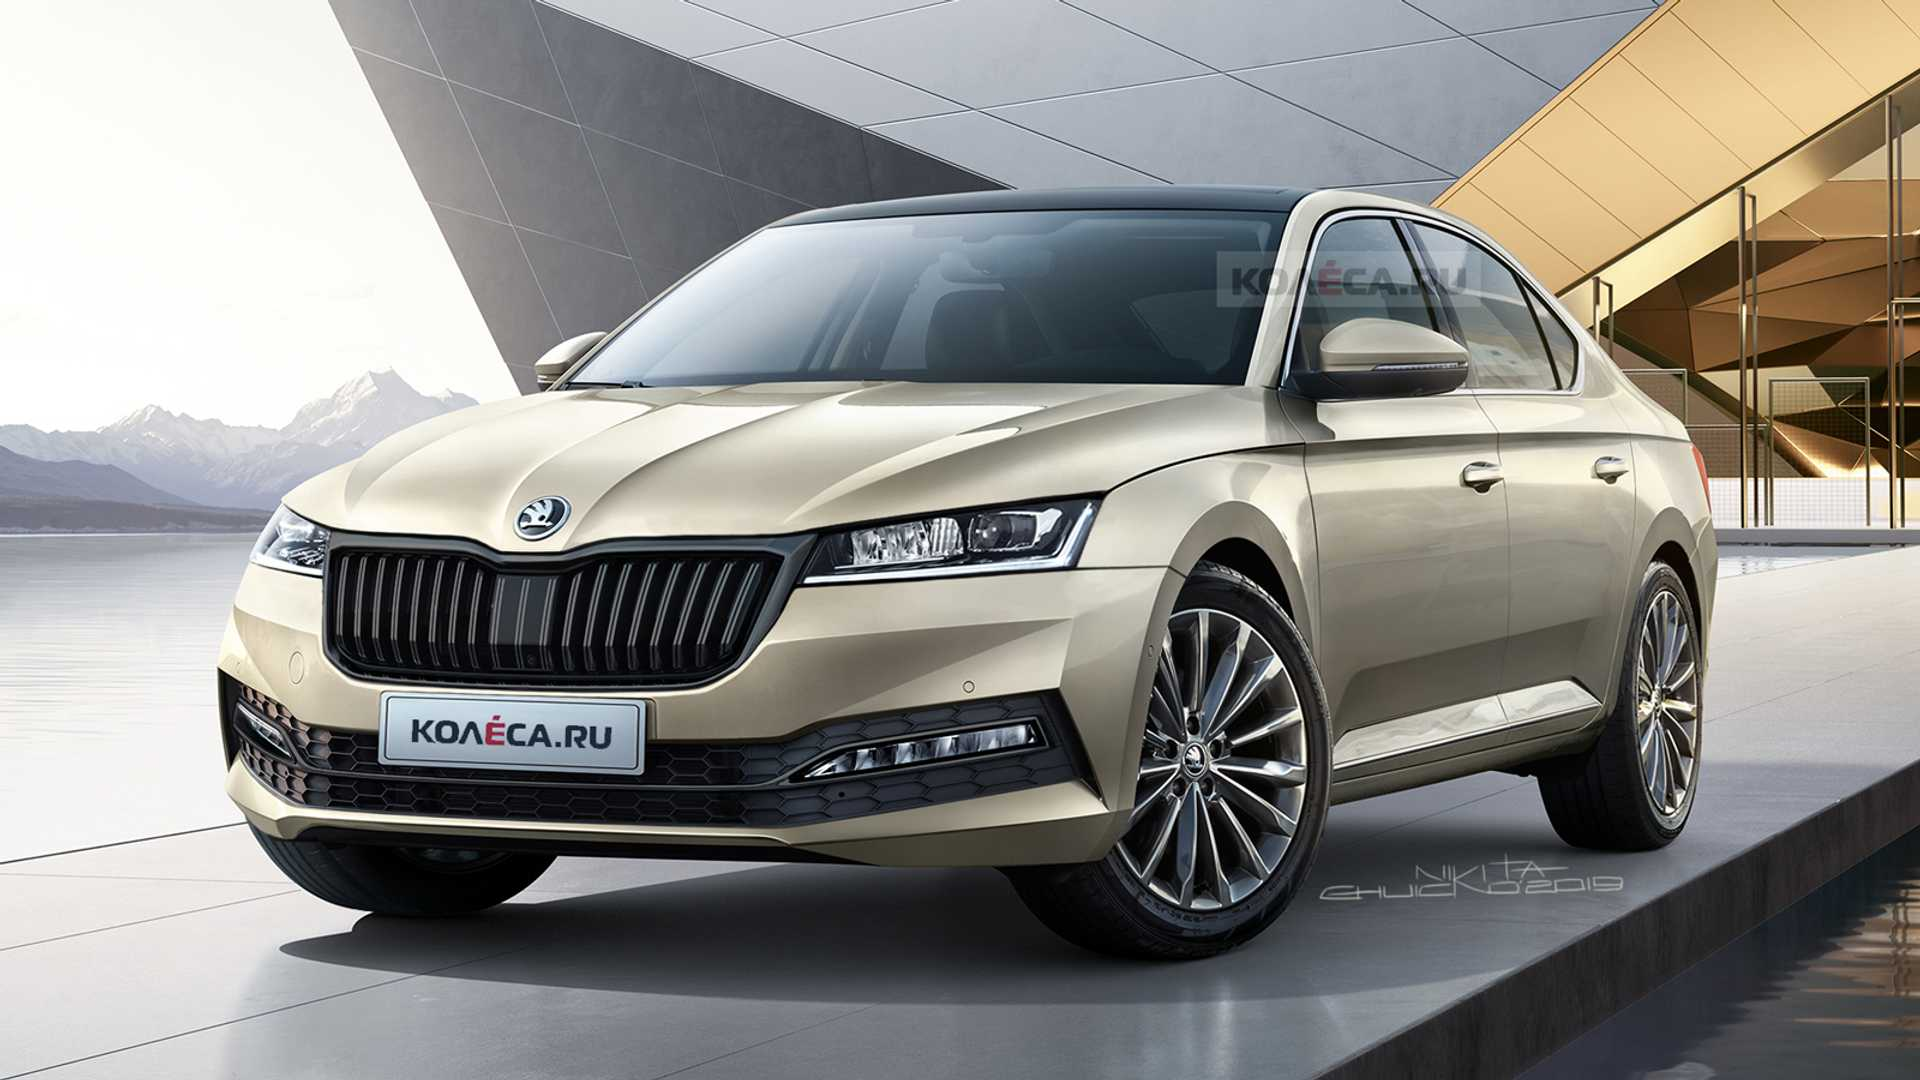 2020 Skoda Octavia Rendering Shows Evolution Of Czech Design Autoevolution